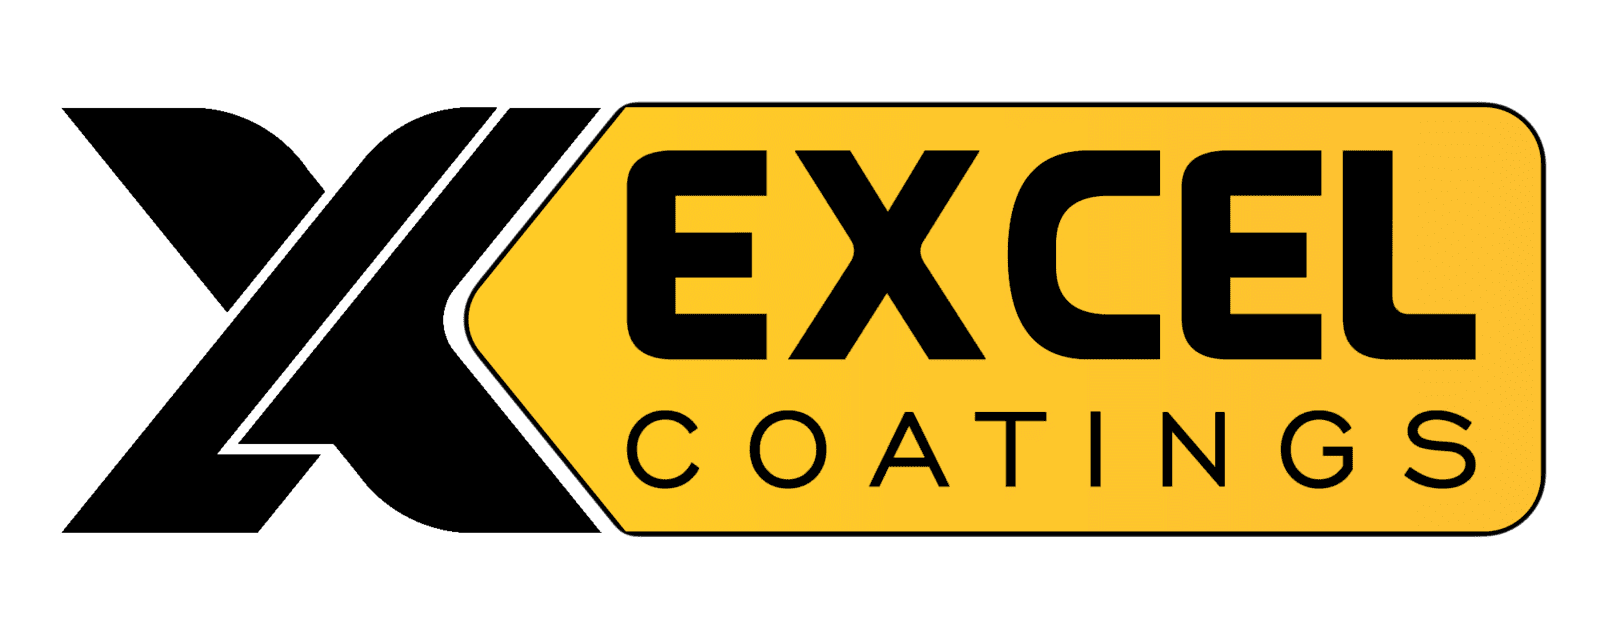 EXCEL COATINGS - Heat Reflective Cool Roof Paint / Transparent Heat Reflective IR-UV Cut Coating